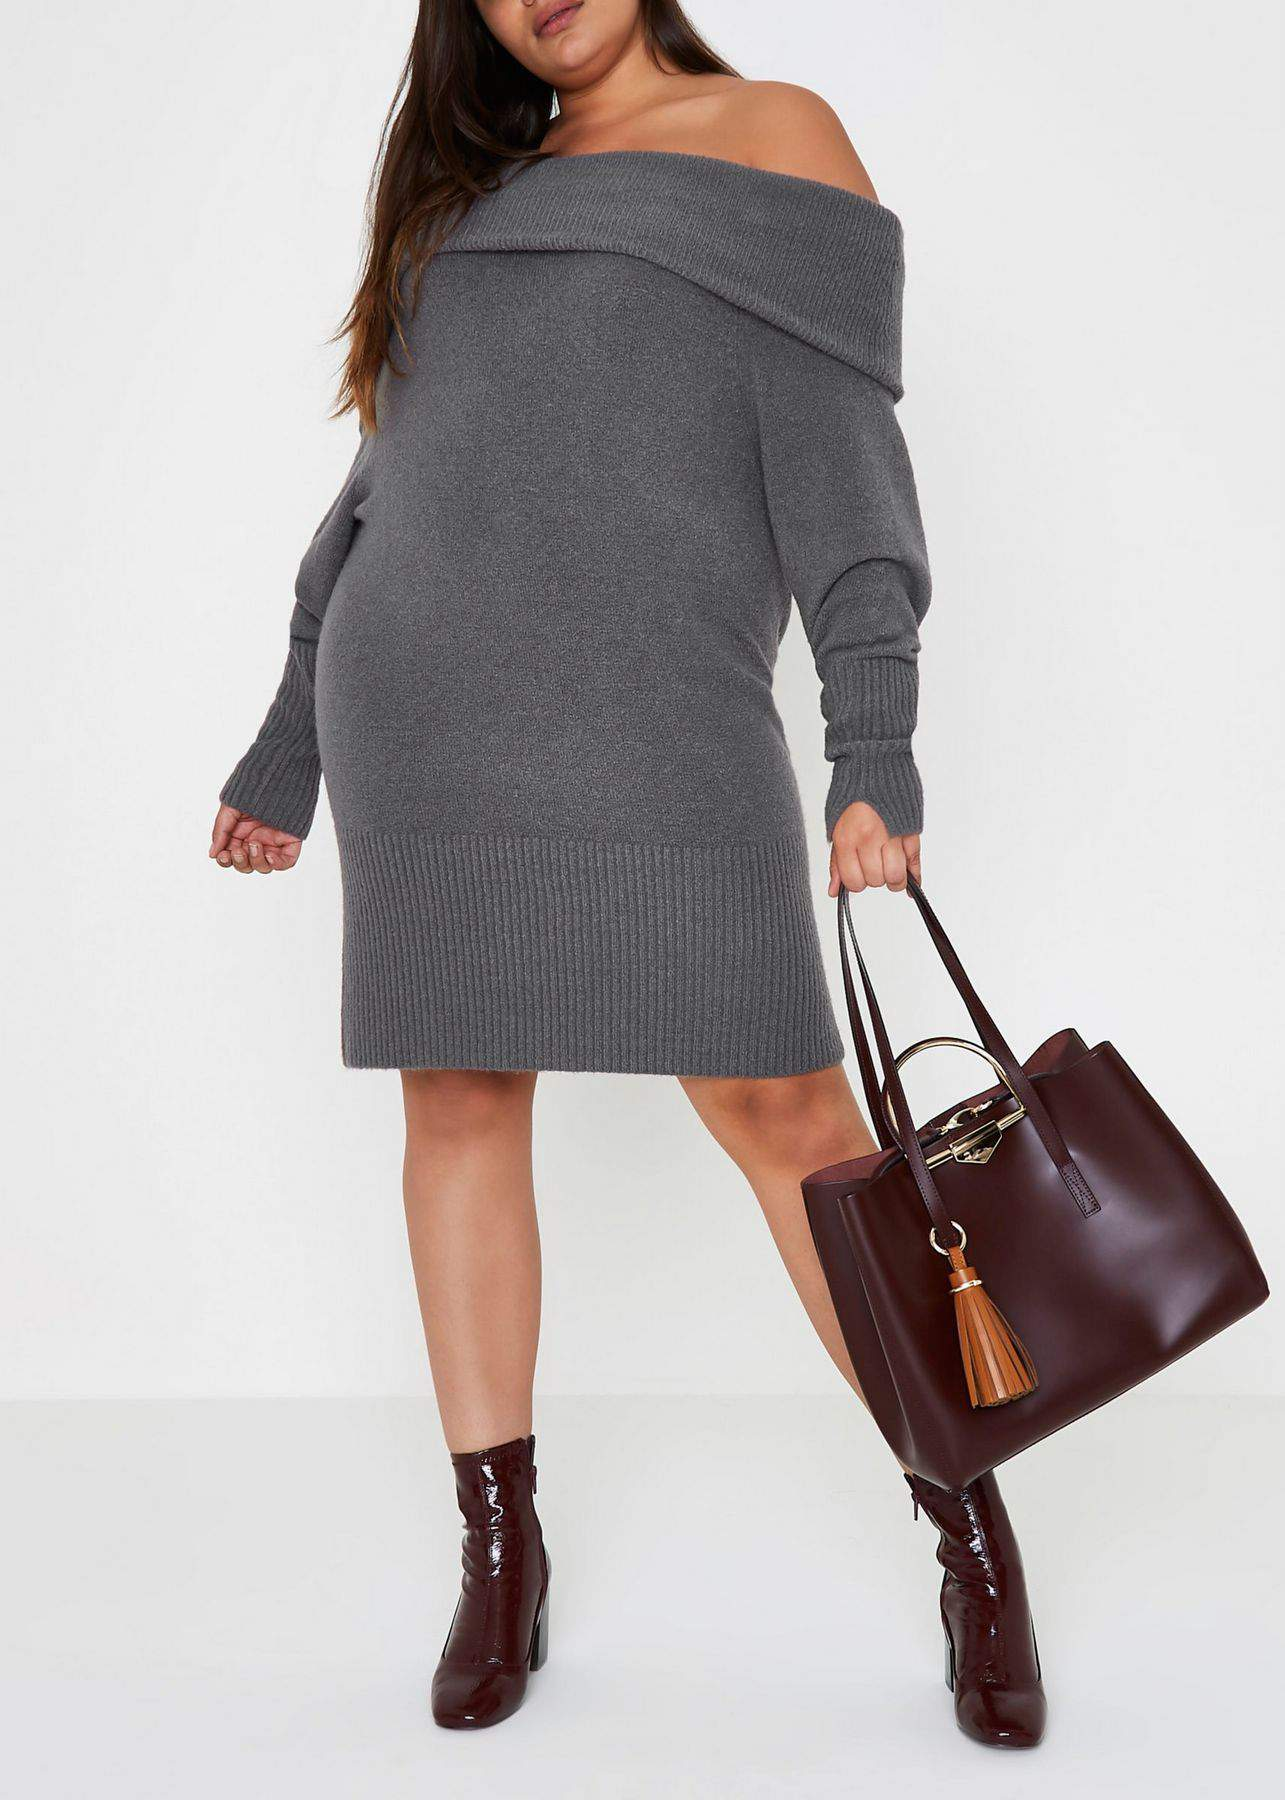 Keep It Cozy And Cute In These Plus Size Sweater Dresses